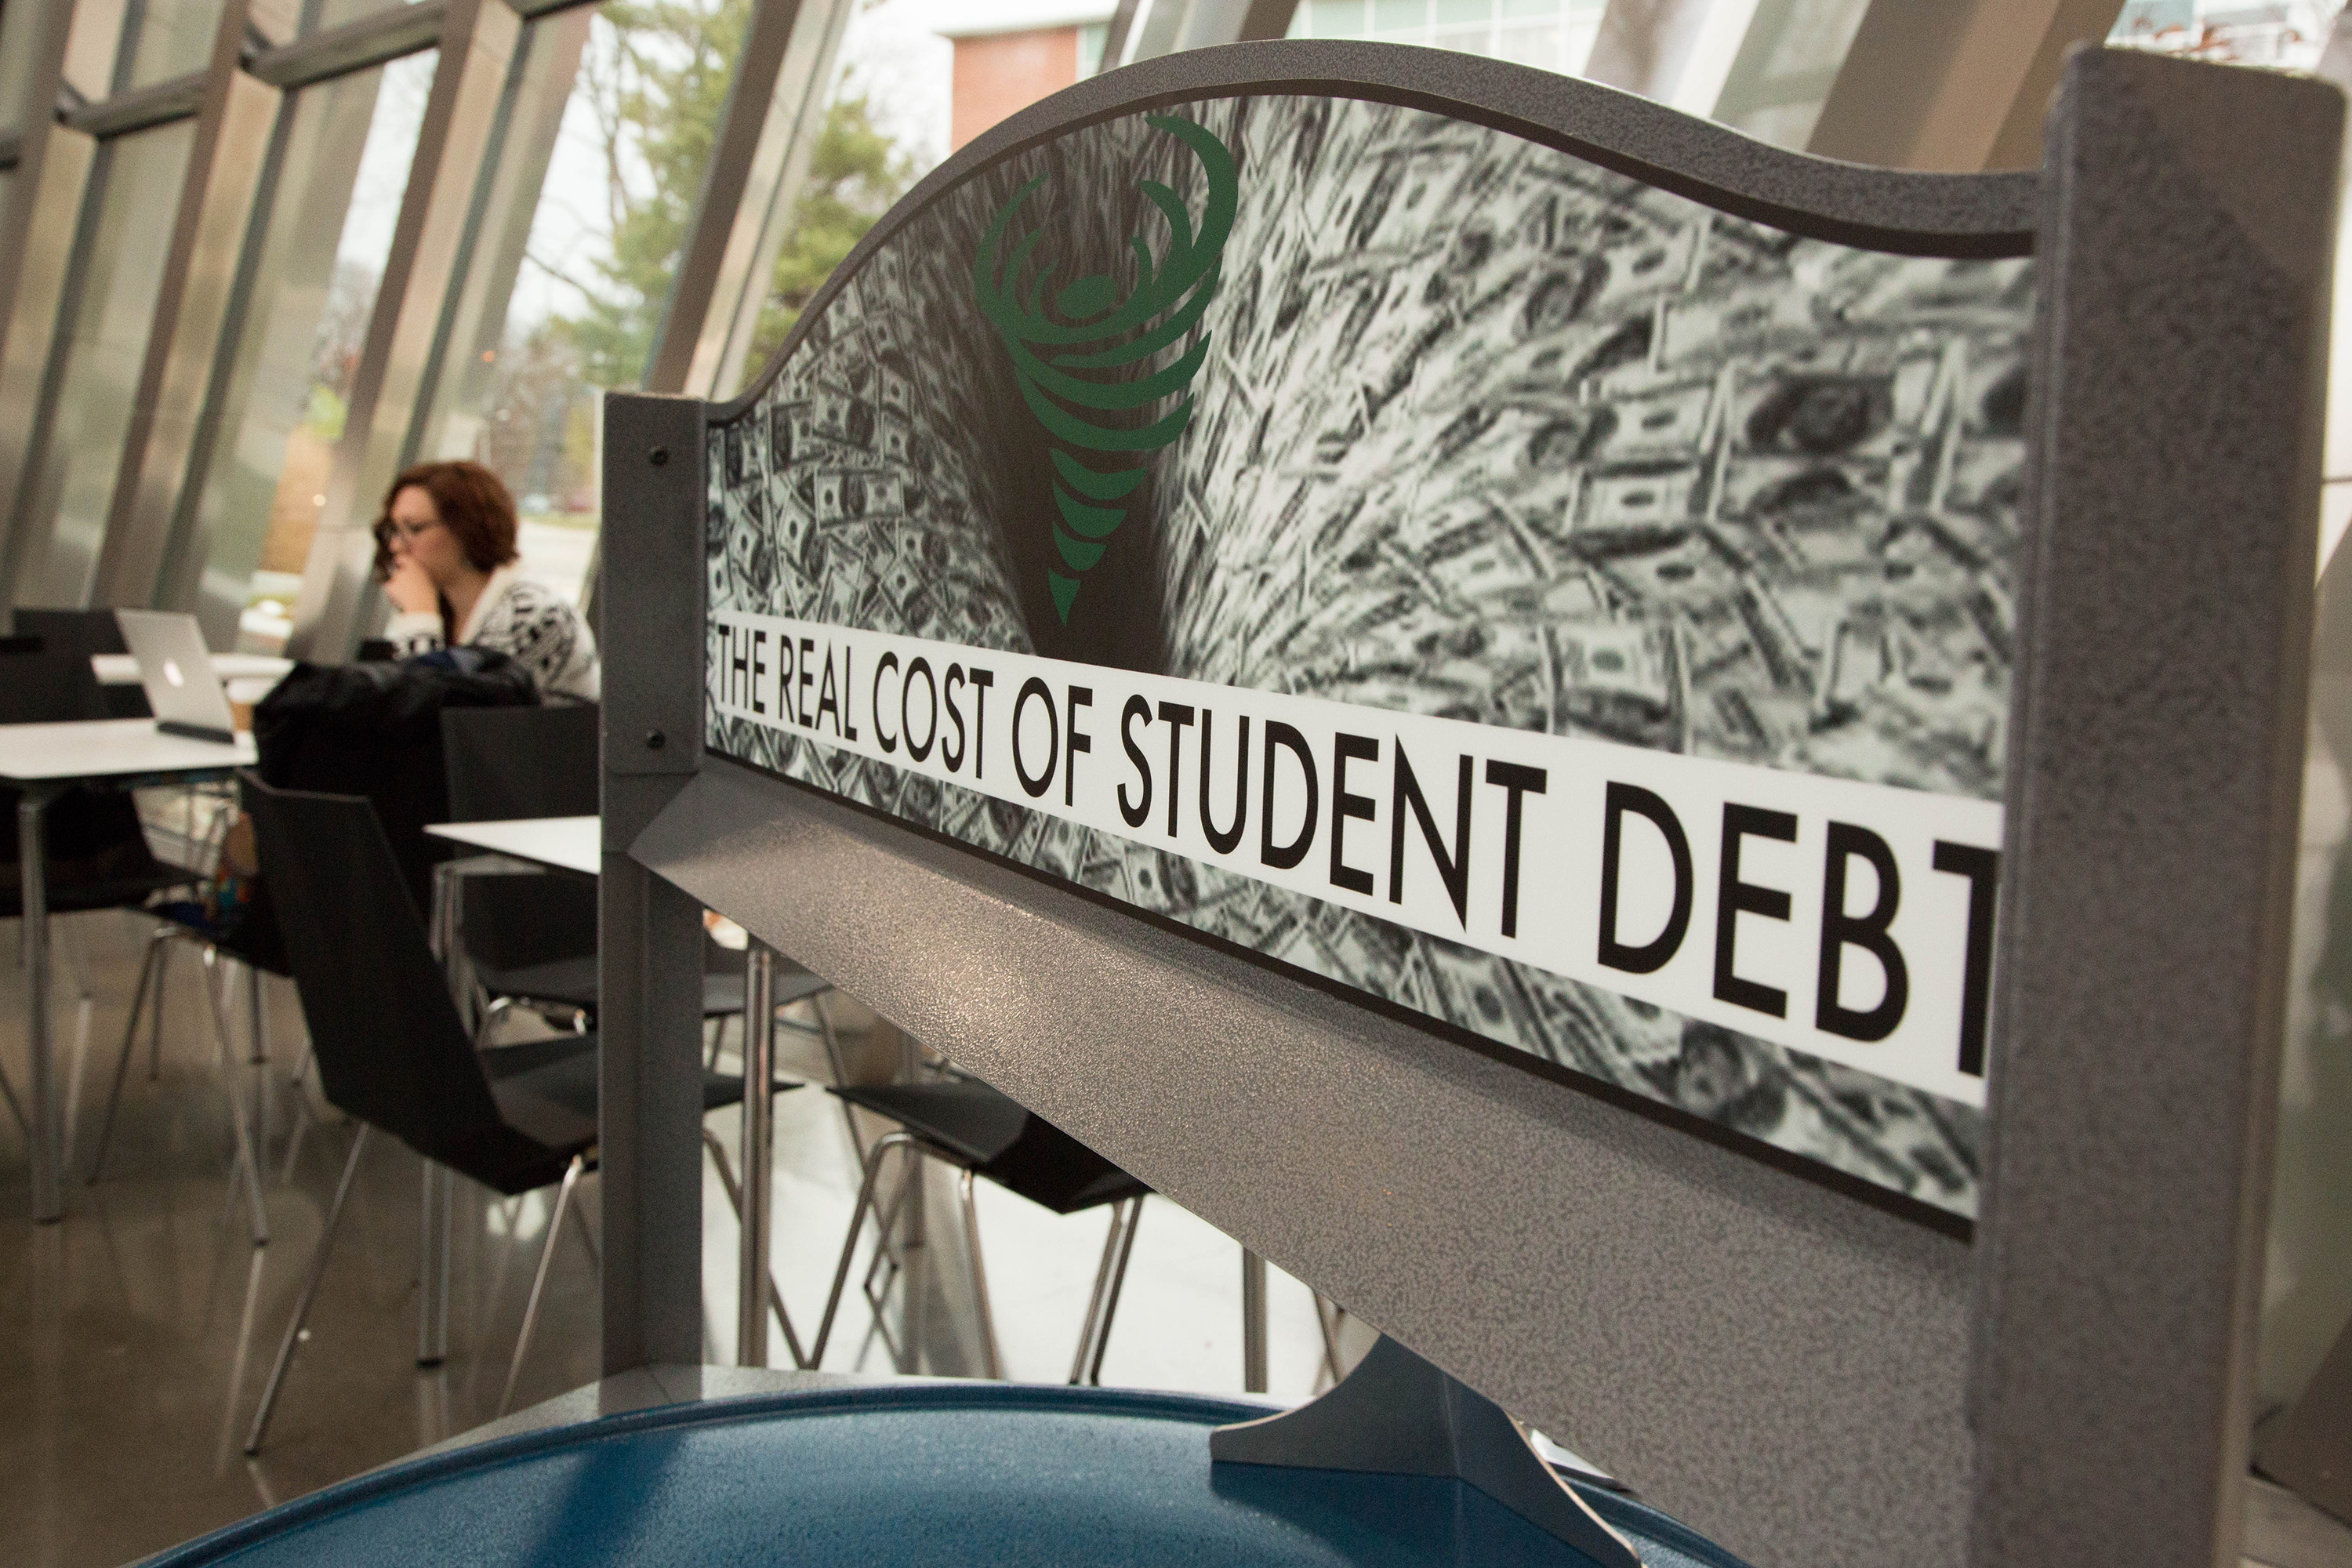 Martha Rosler, <i>Coin Vortex for Student Debt</i>, 2014, installation view at the Eli and Edythe Broad Art Museum at Michigan State University, 2014. Courtesy the artist. Photo: MSU Broad